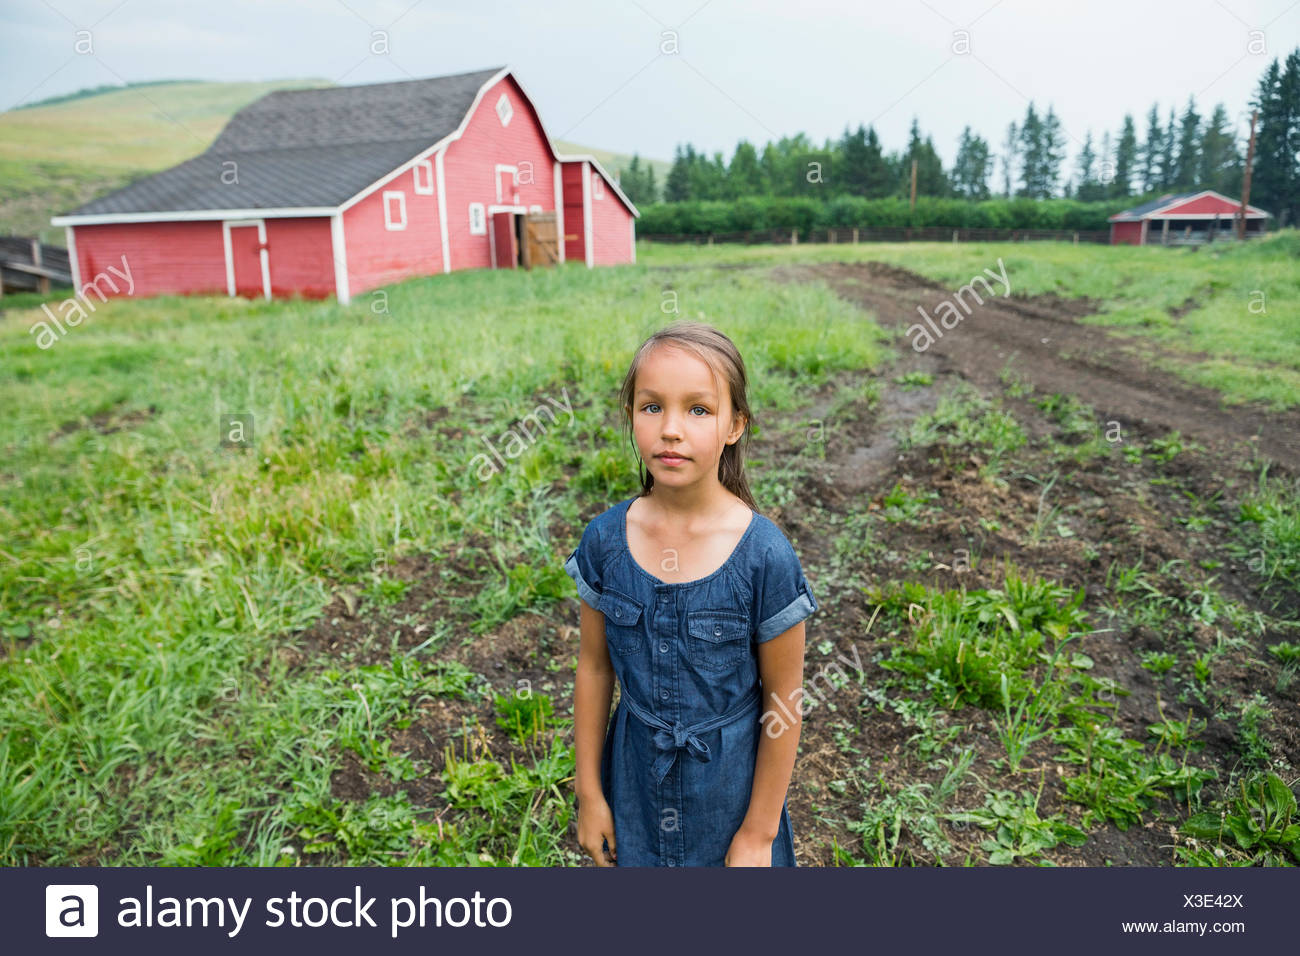 Portrait of girl in rural pasture outside barn - Stock Image